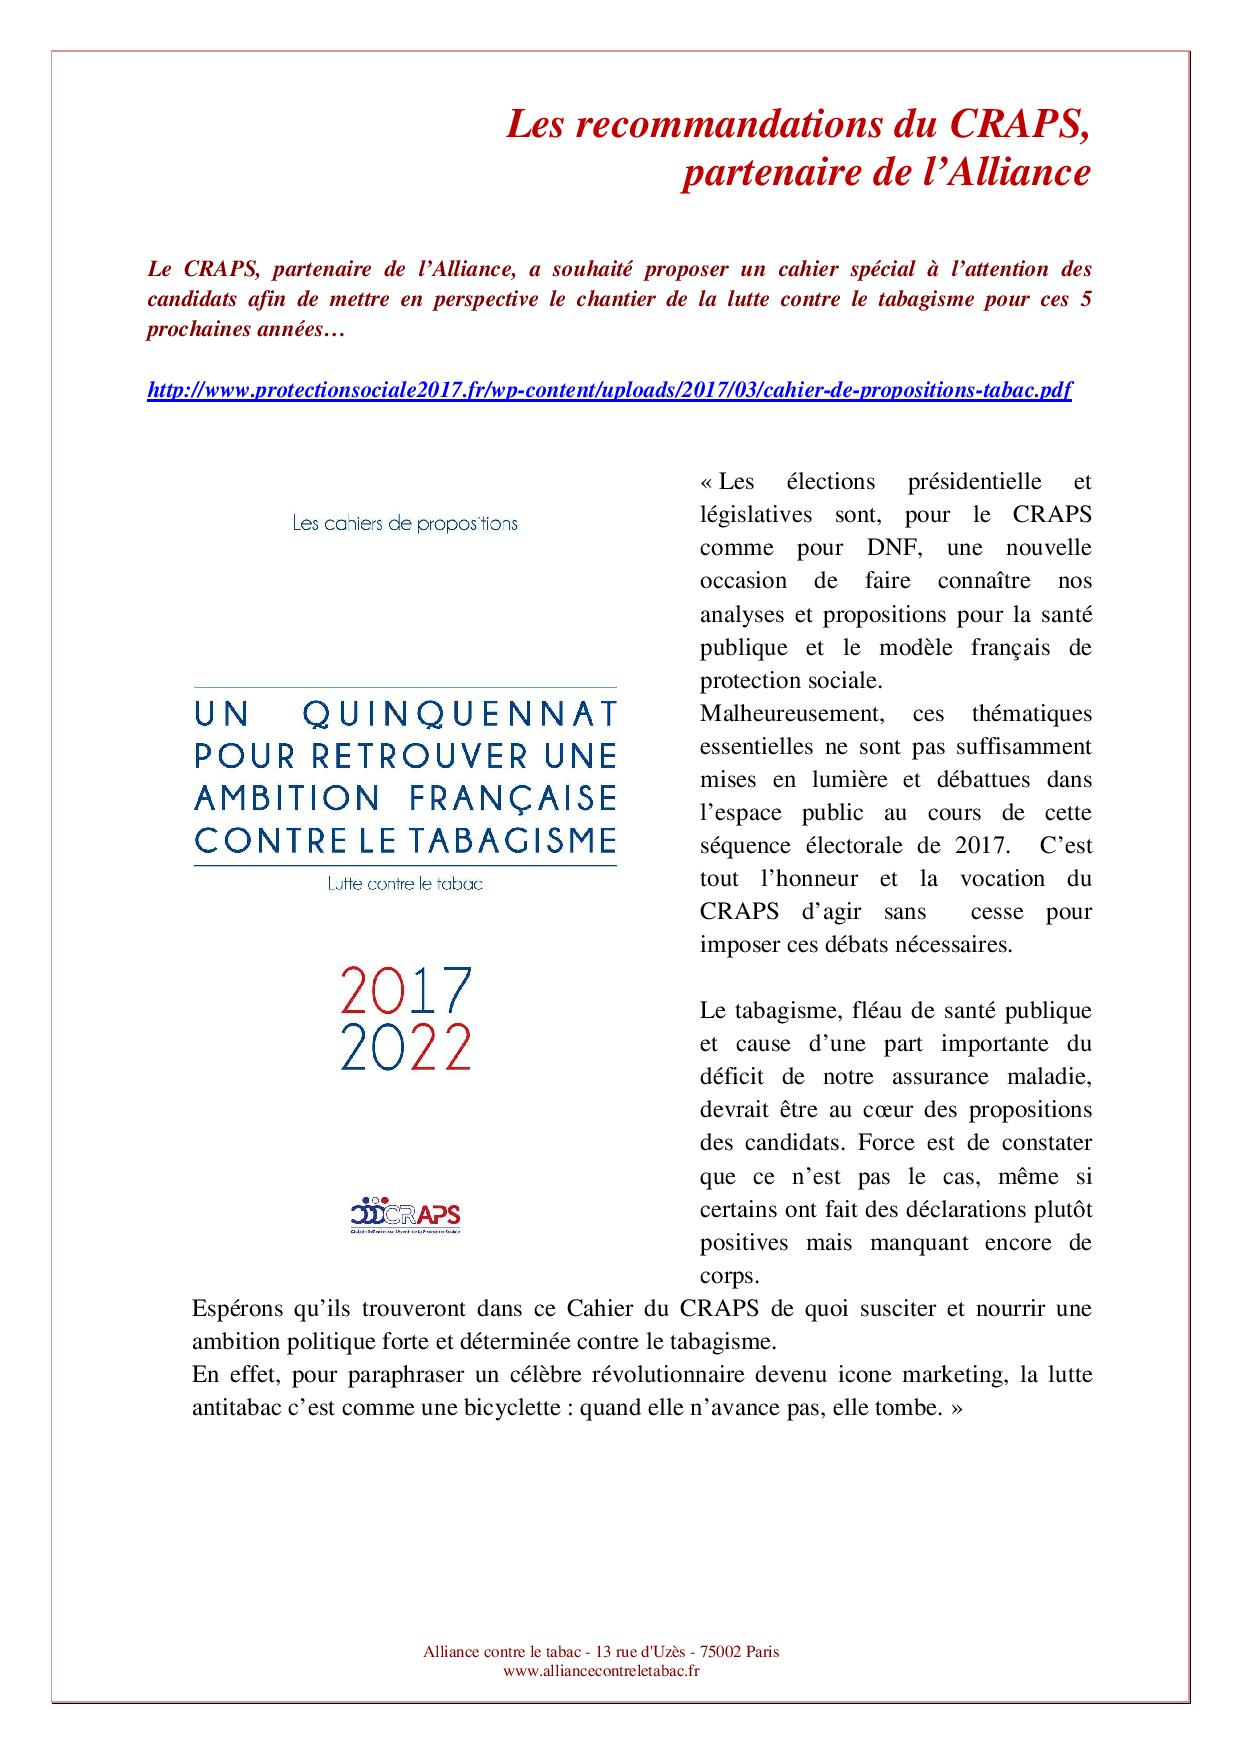 Alliance contre le tabac - DP - 11042017-page-028.jpg